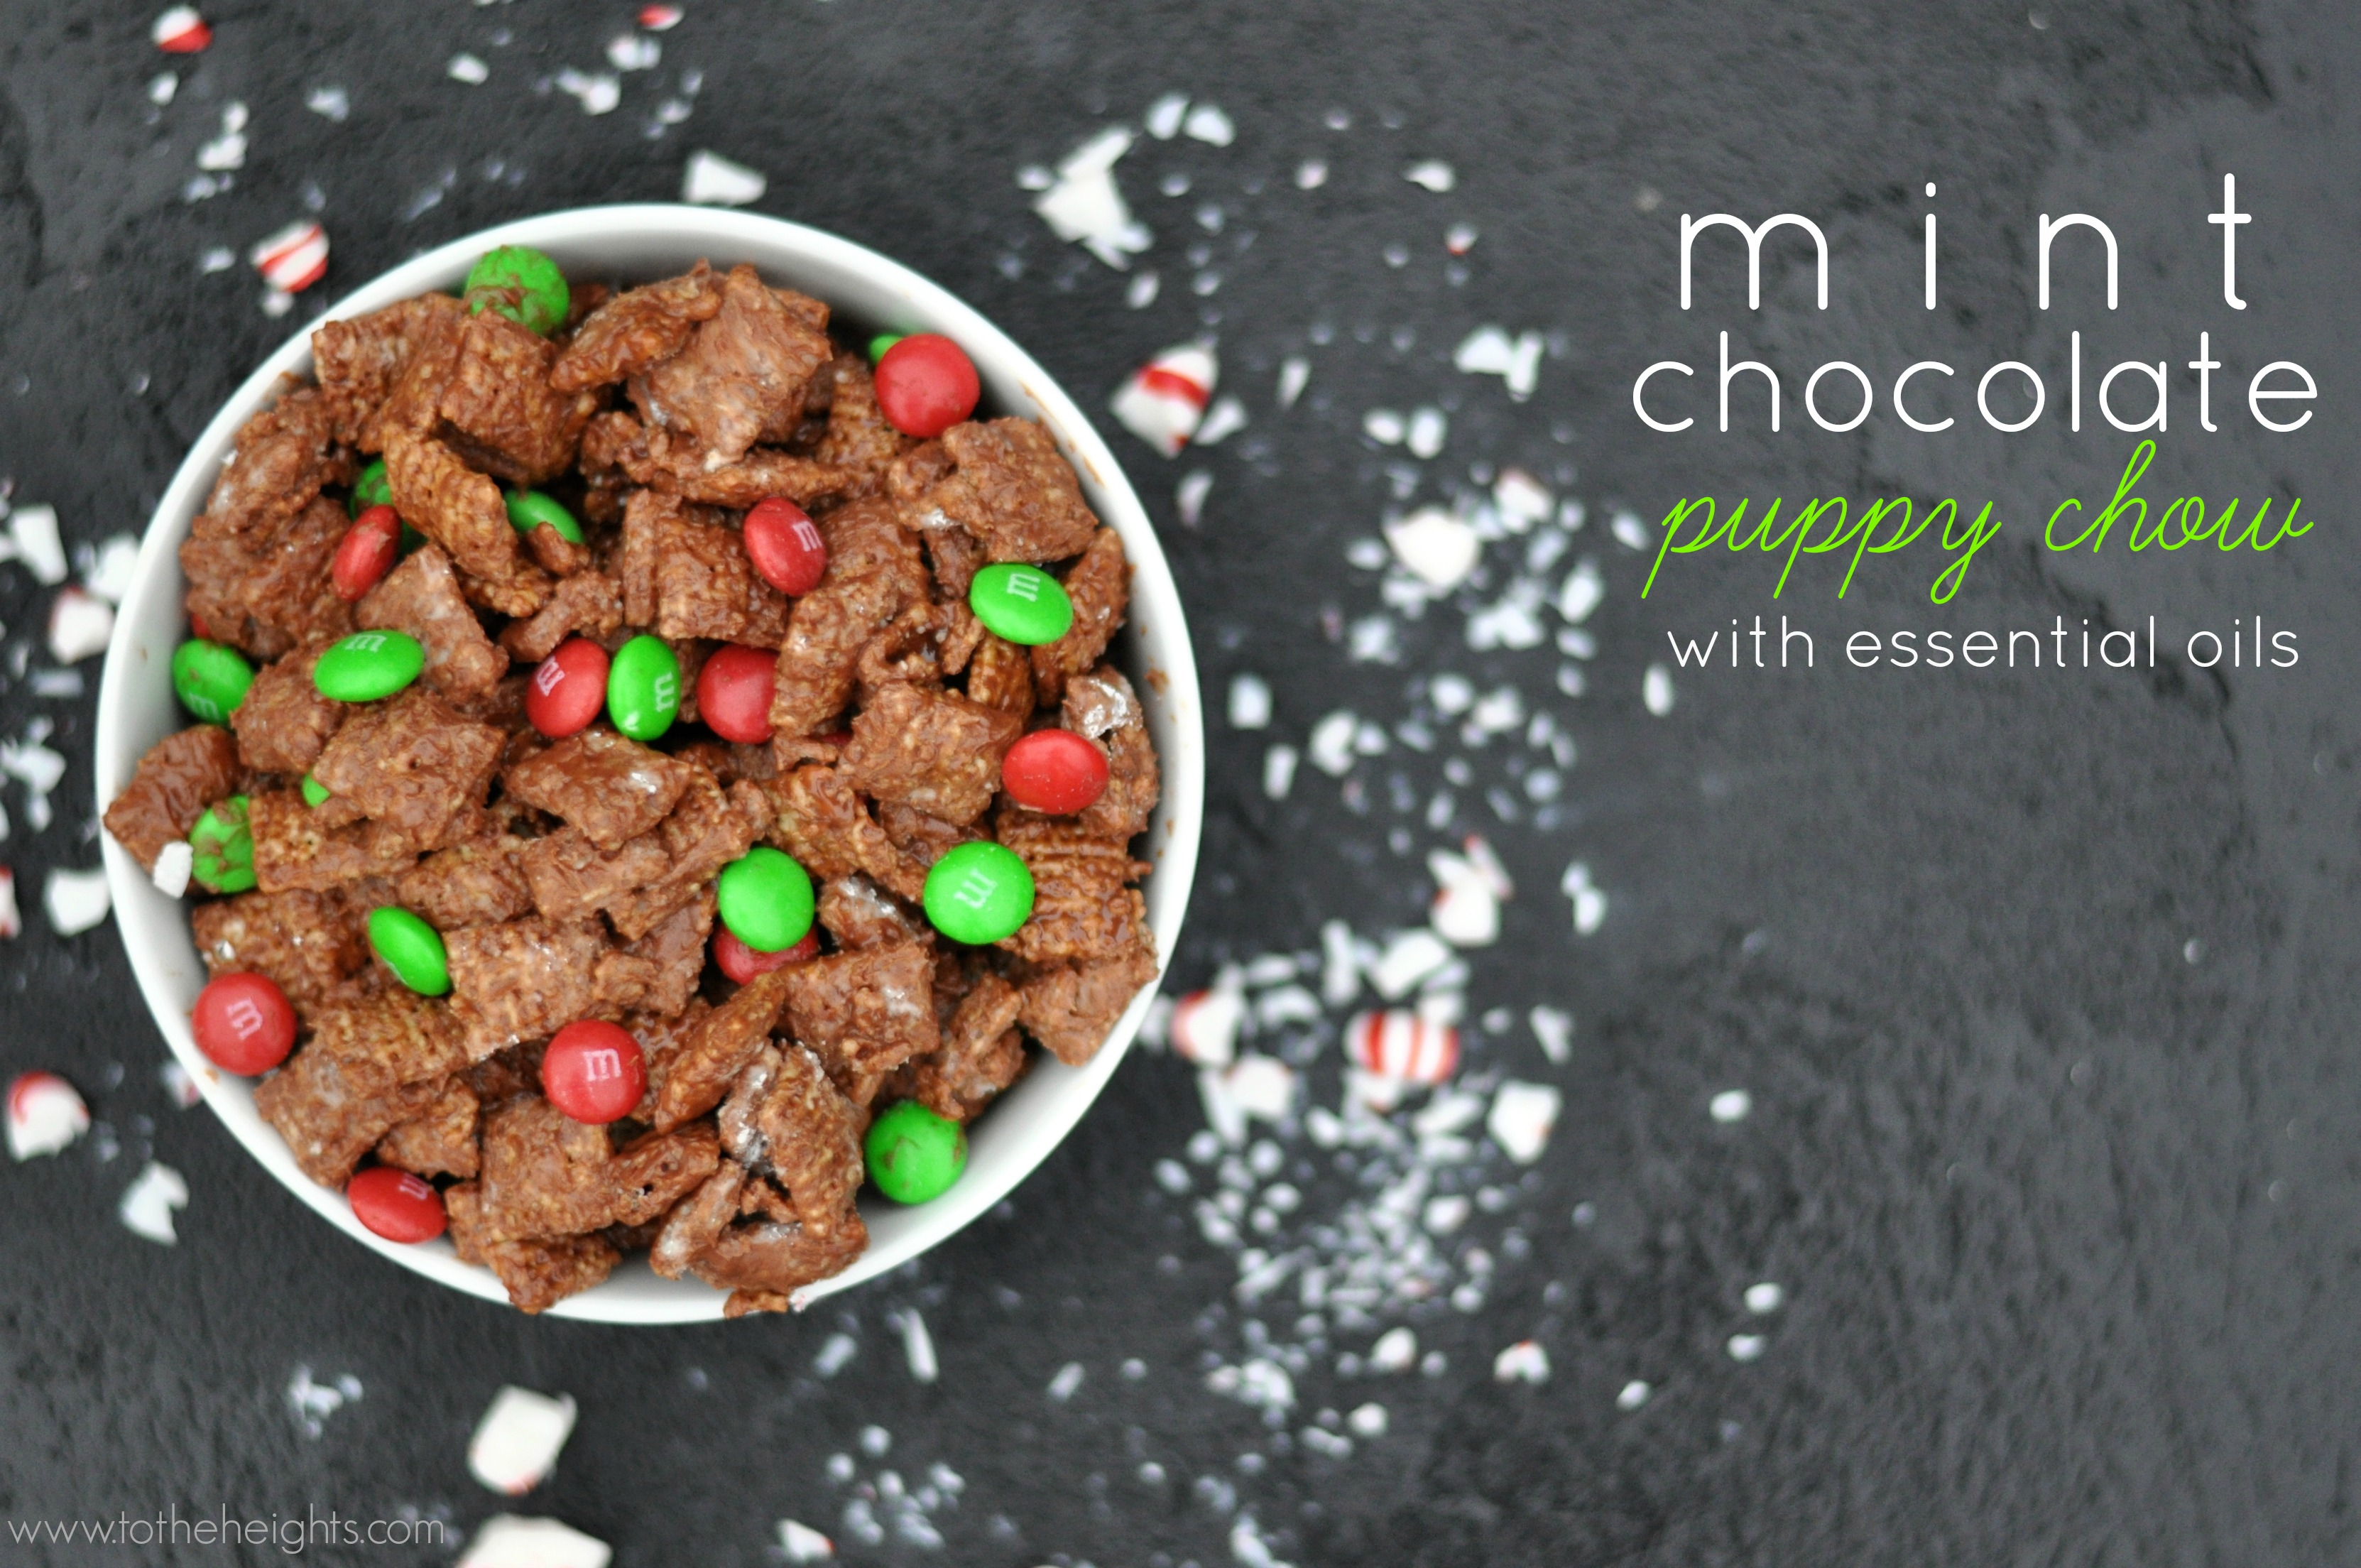 mint-chocolate-puppy-chow-essential-oils